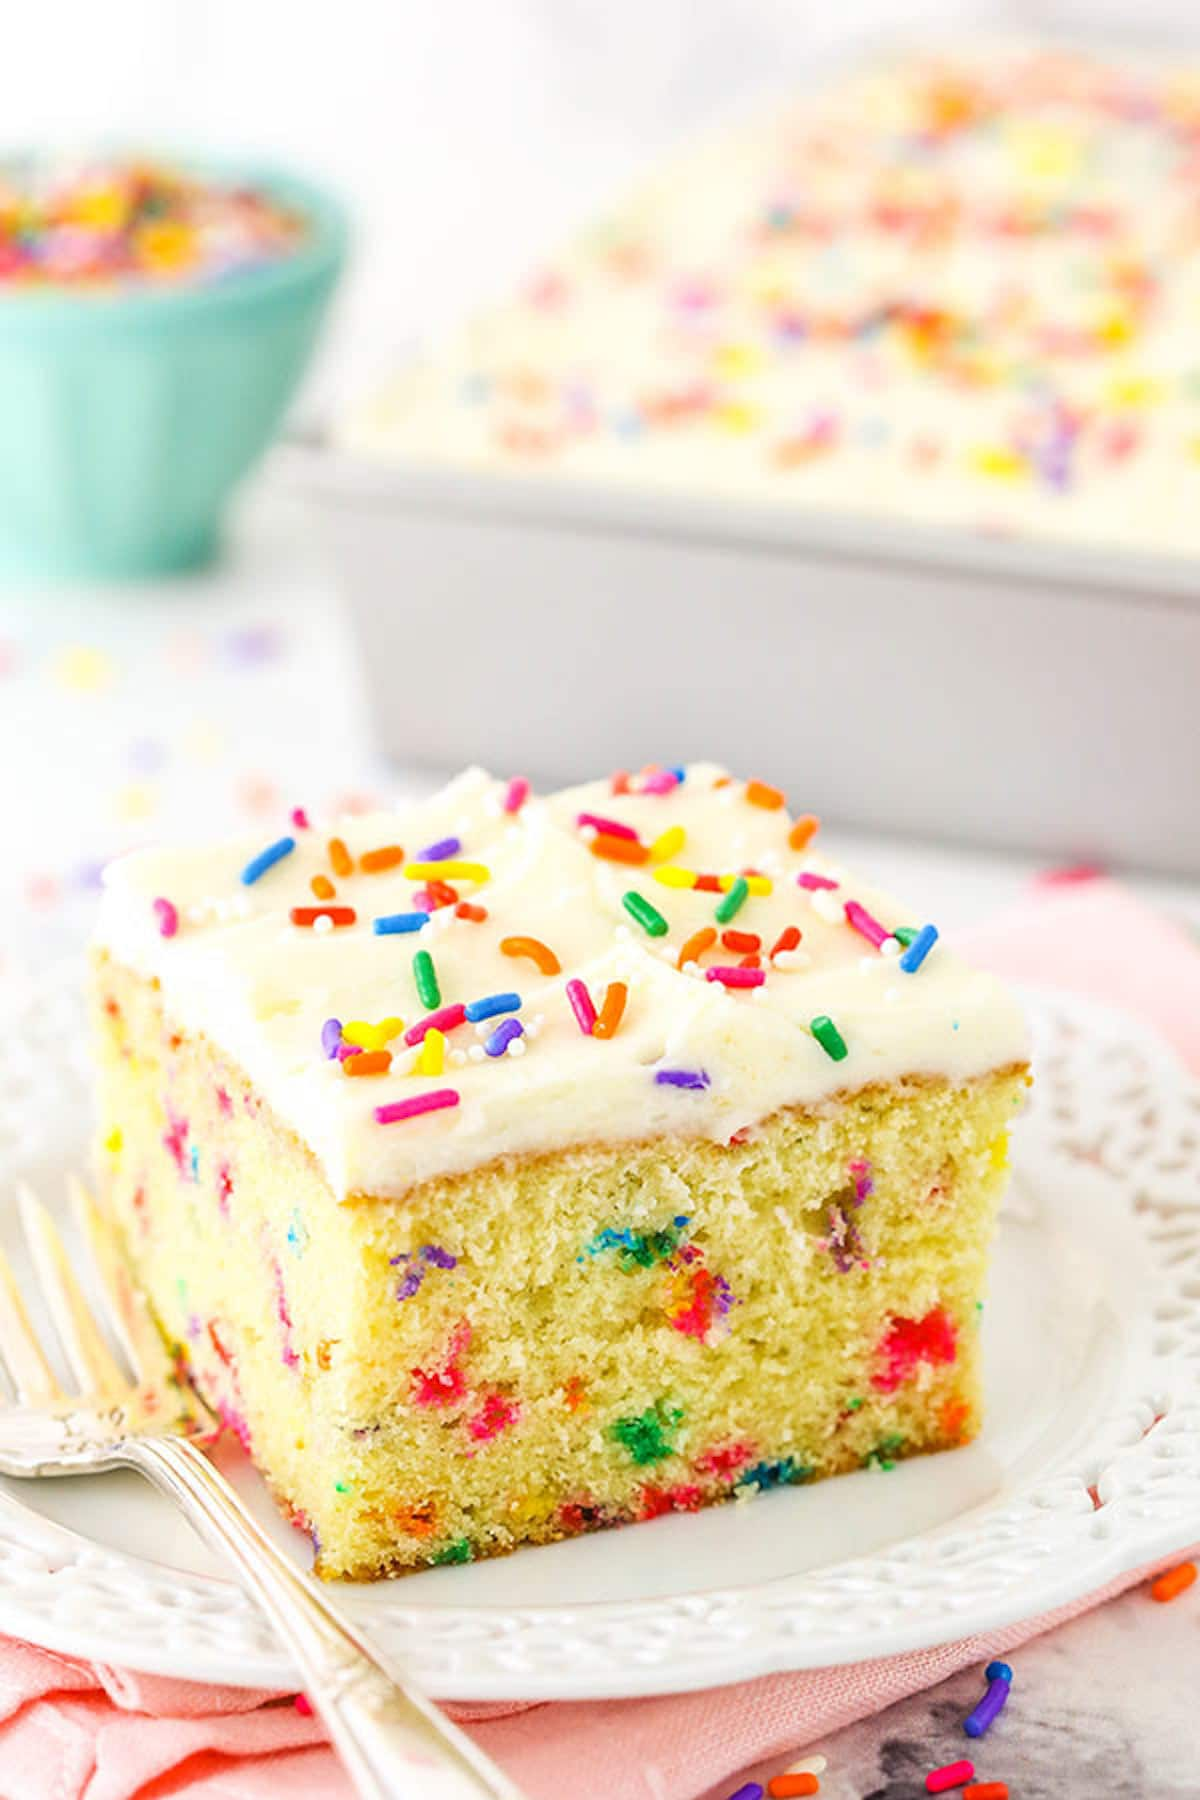 A Slice of Confetti Cake on a Plate with a Lace-Patterned Border